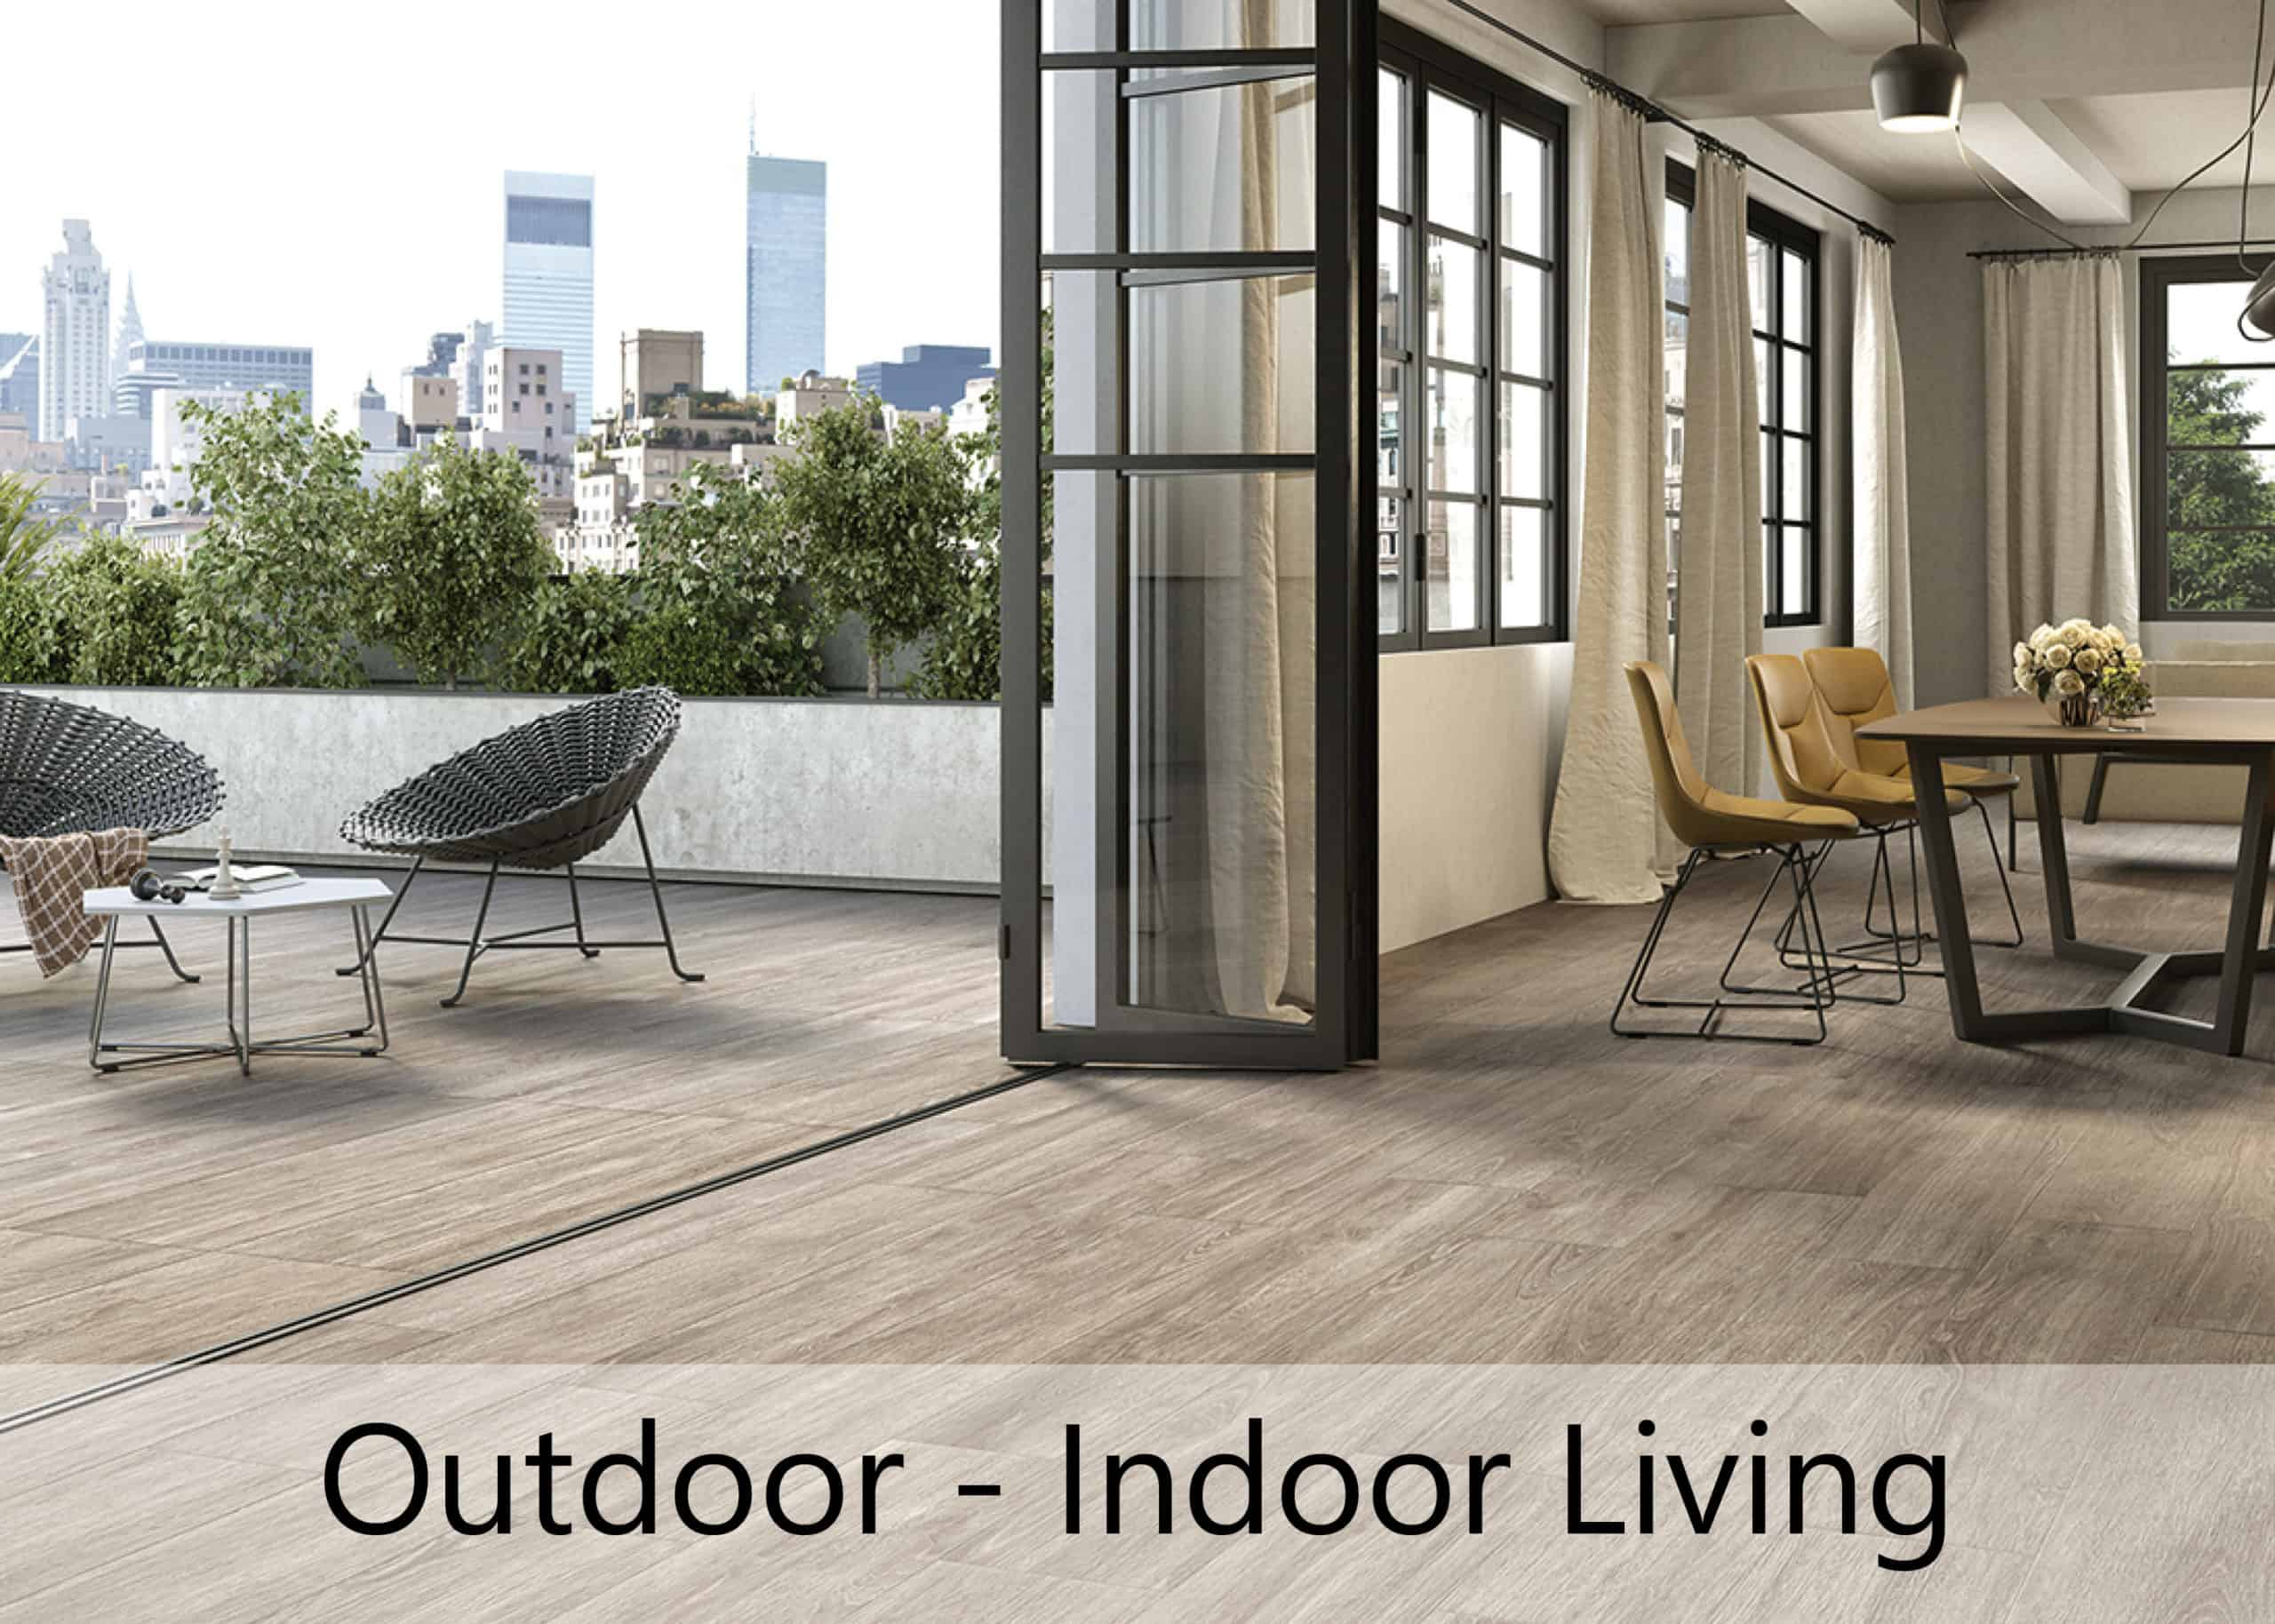 outdoor indoor living image web 2